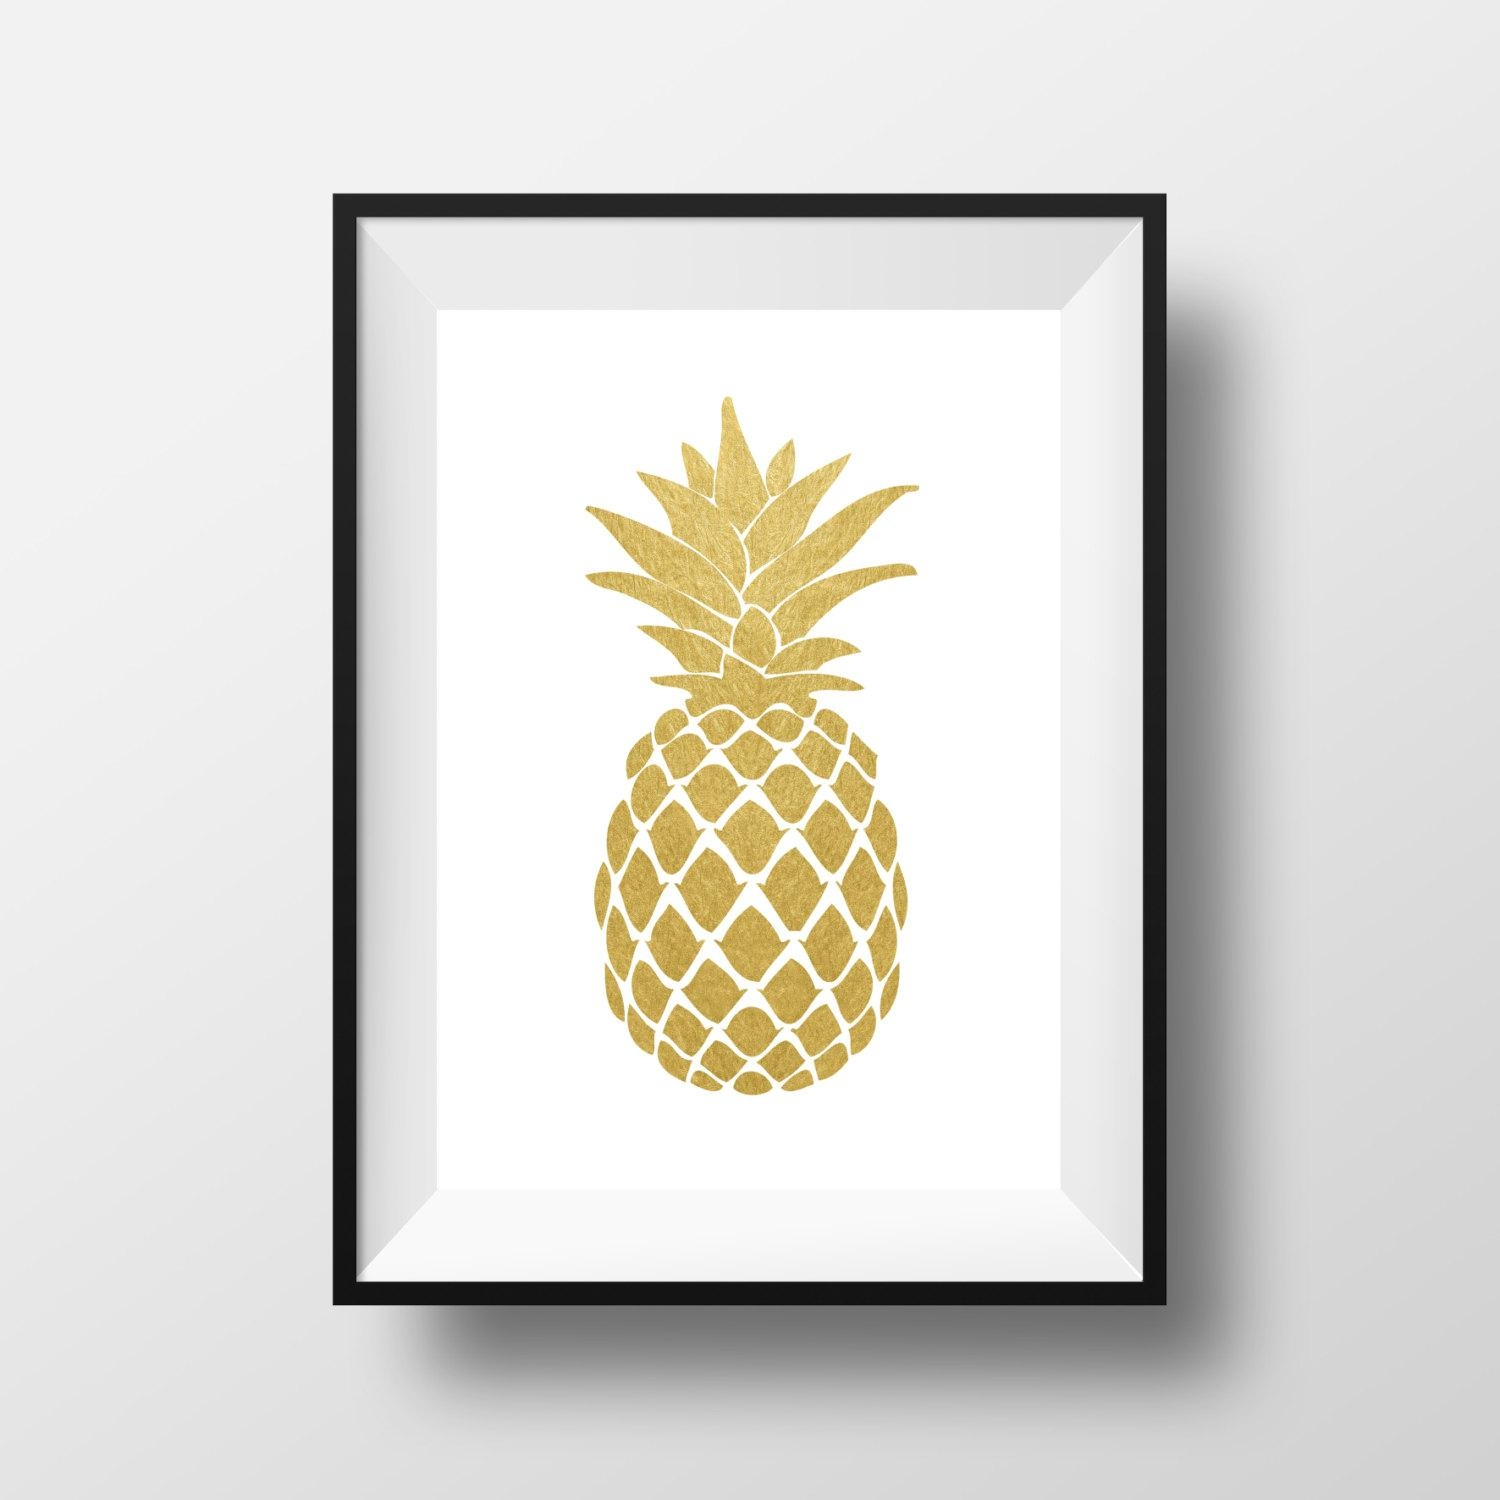 Wall Art Design Ideas: Gold White Pineapple Wall Art Paper Black Intended For Pineapple Metal Wall Art (View 3 of 20)